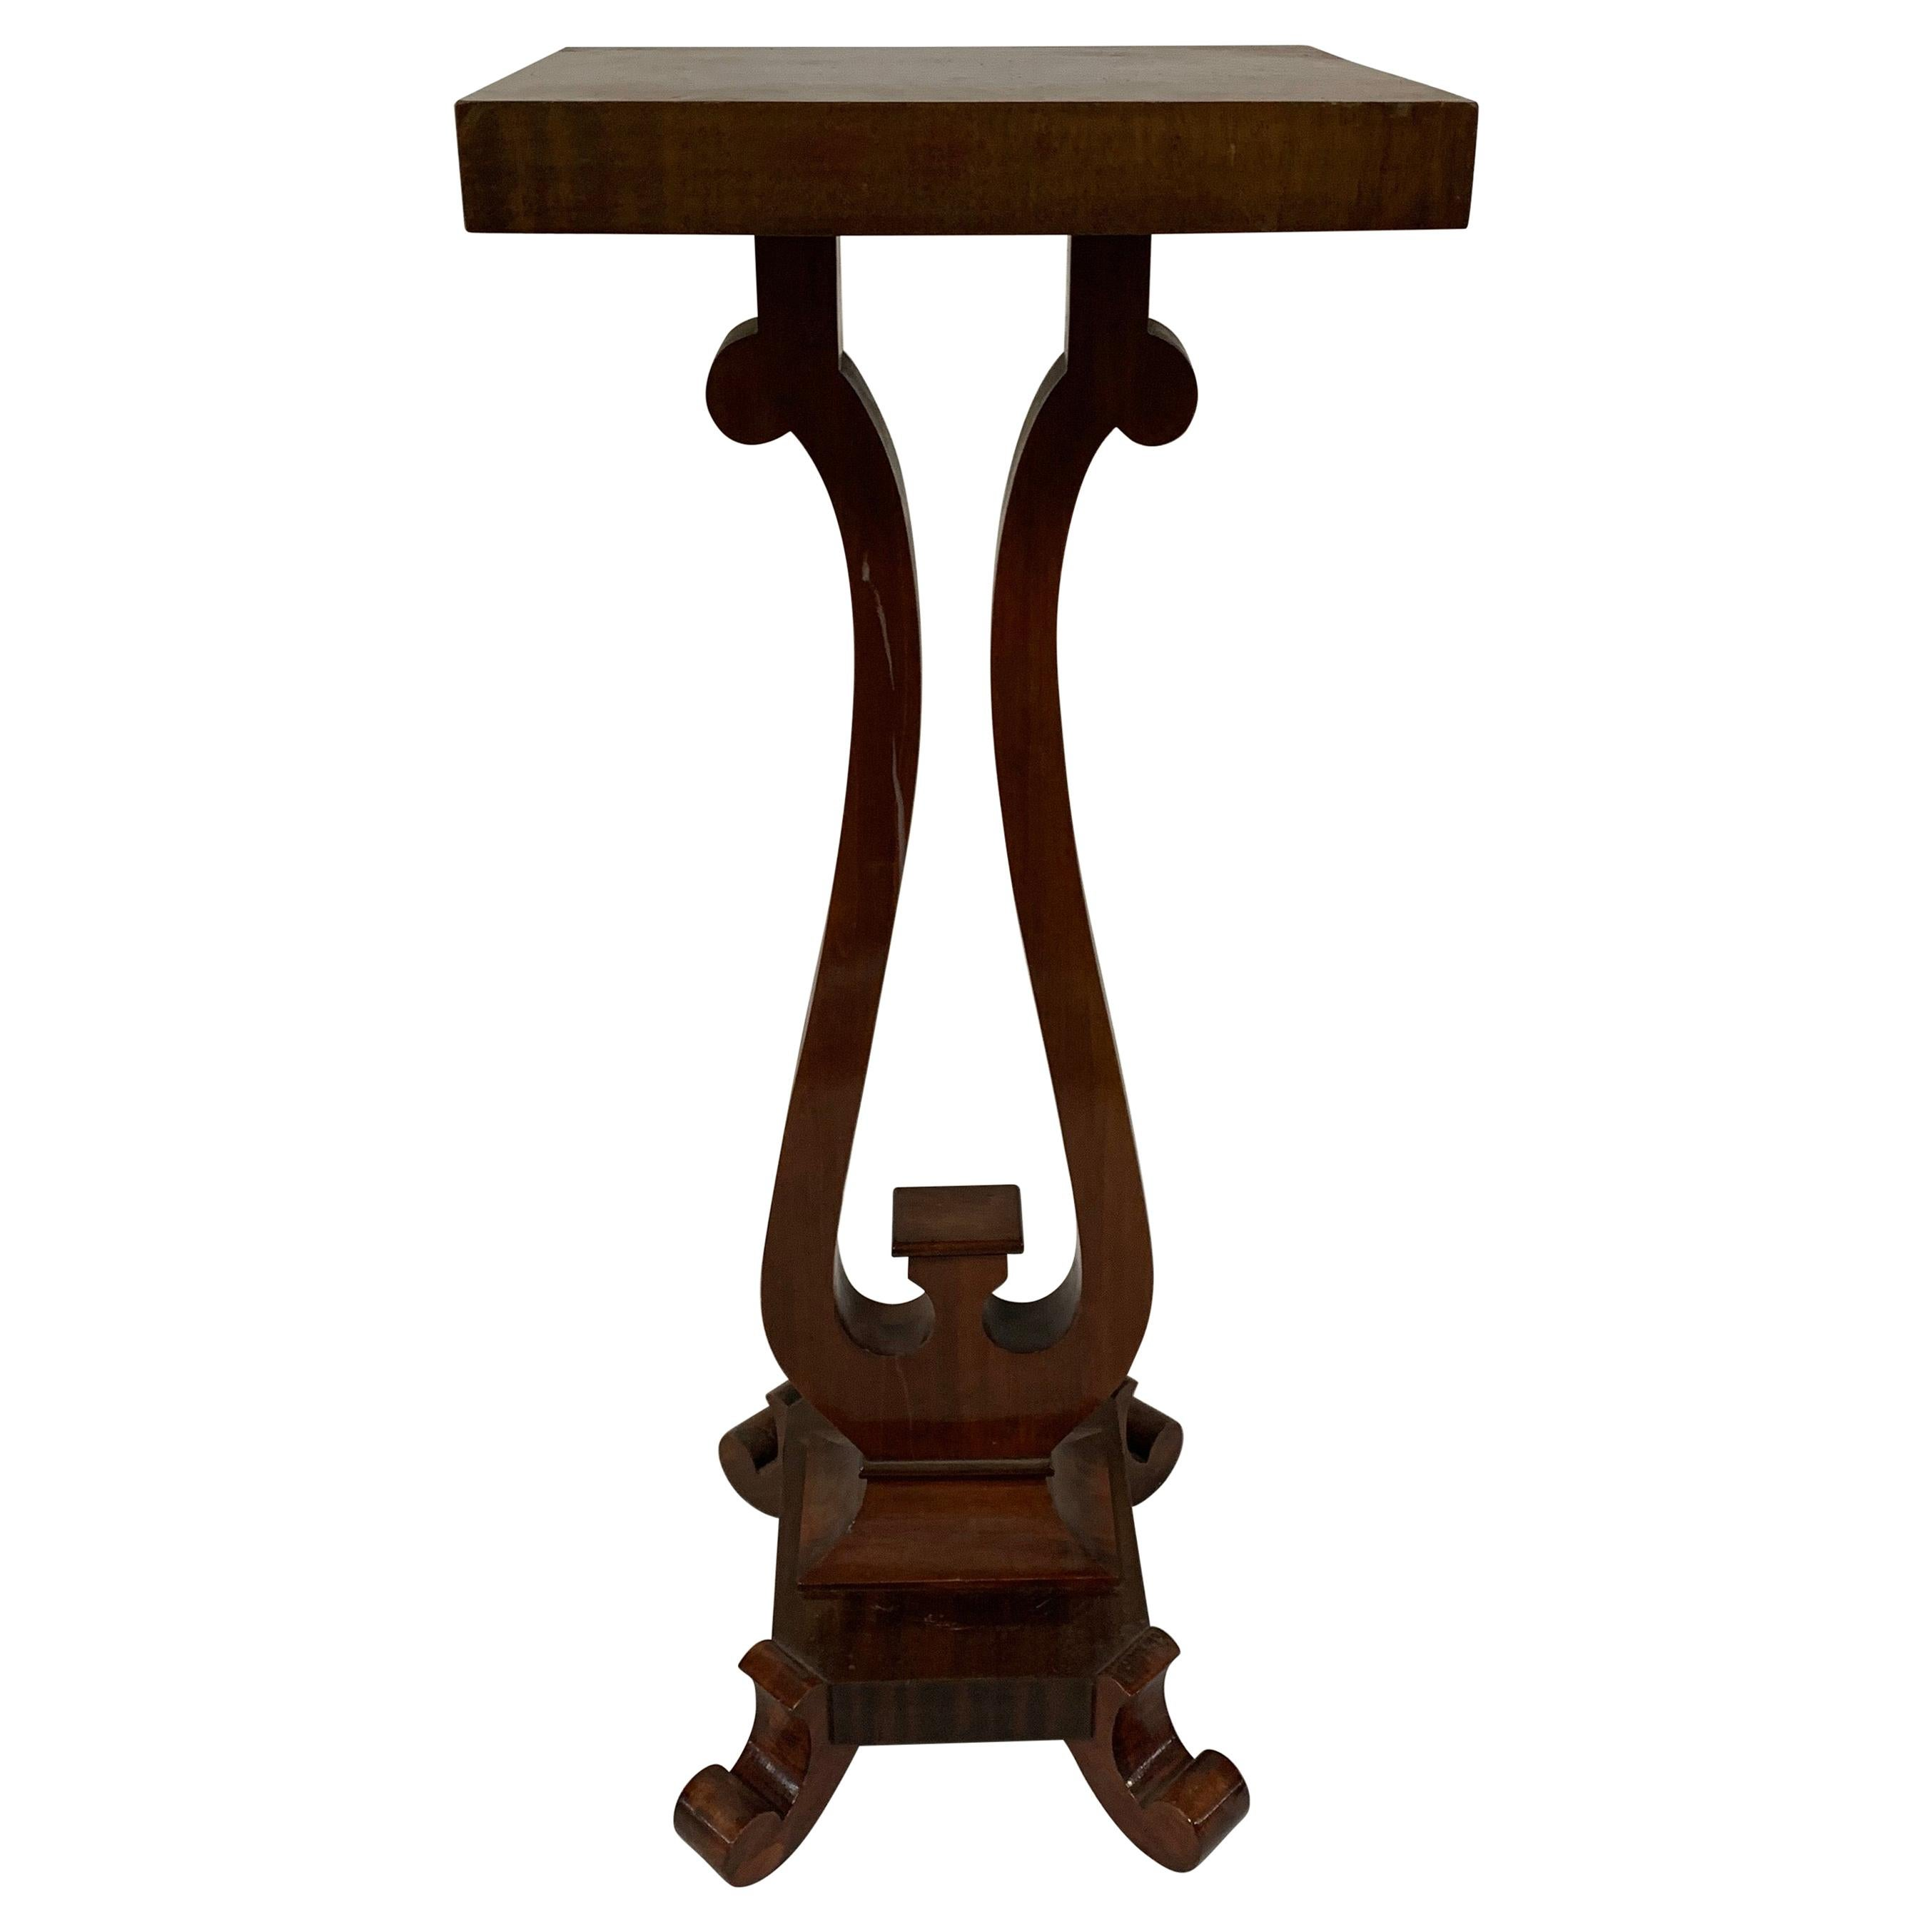 1920s Empire Revival Mahogany Pedestal